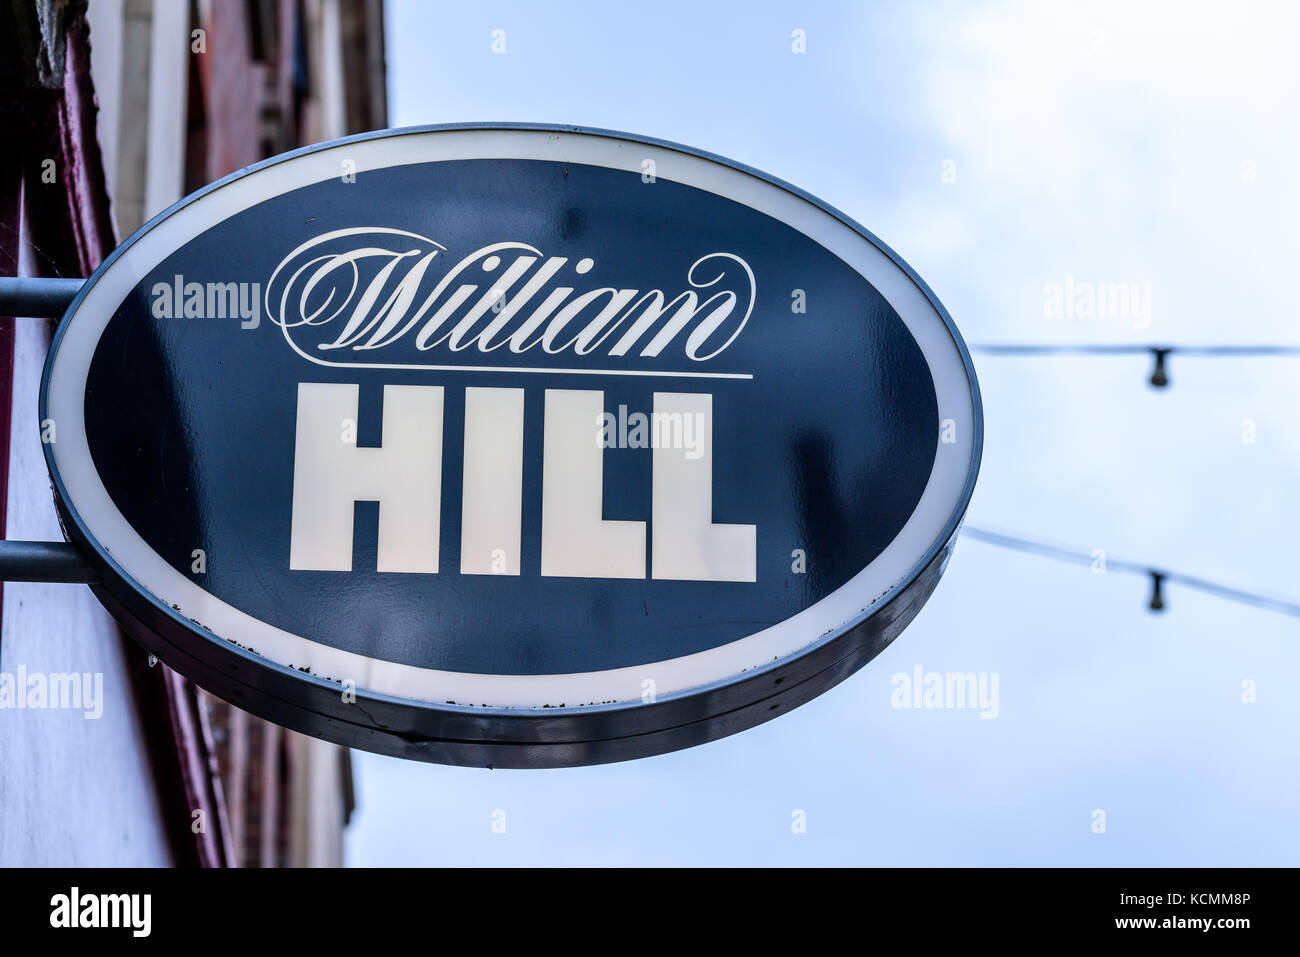 Northampton UK October 5, 2017: William Hill betting logo sign in Northampton town centre. - Stock Image